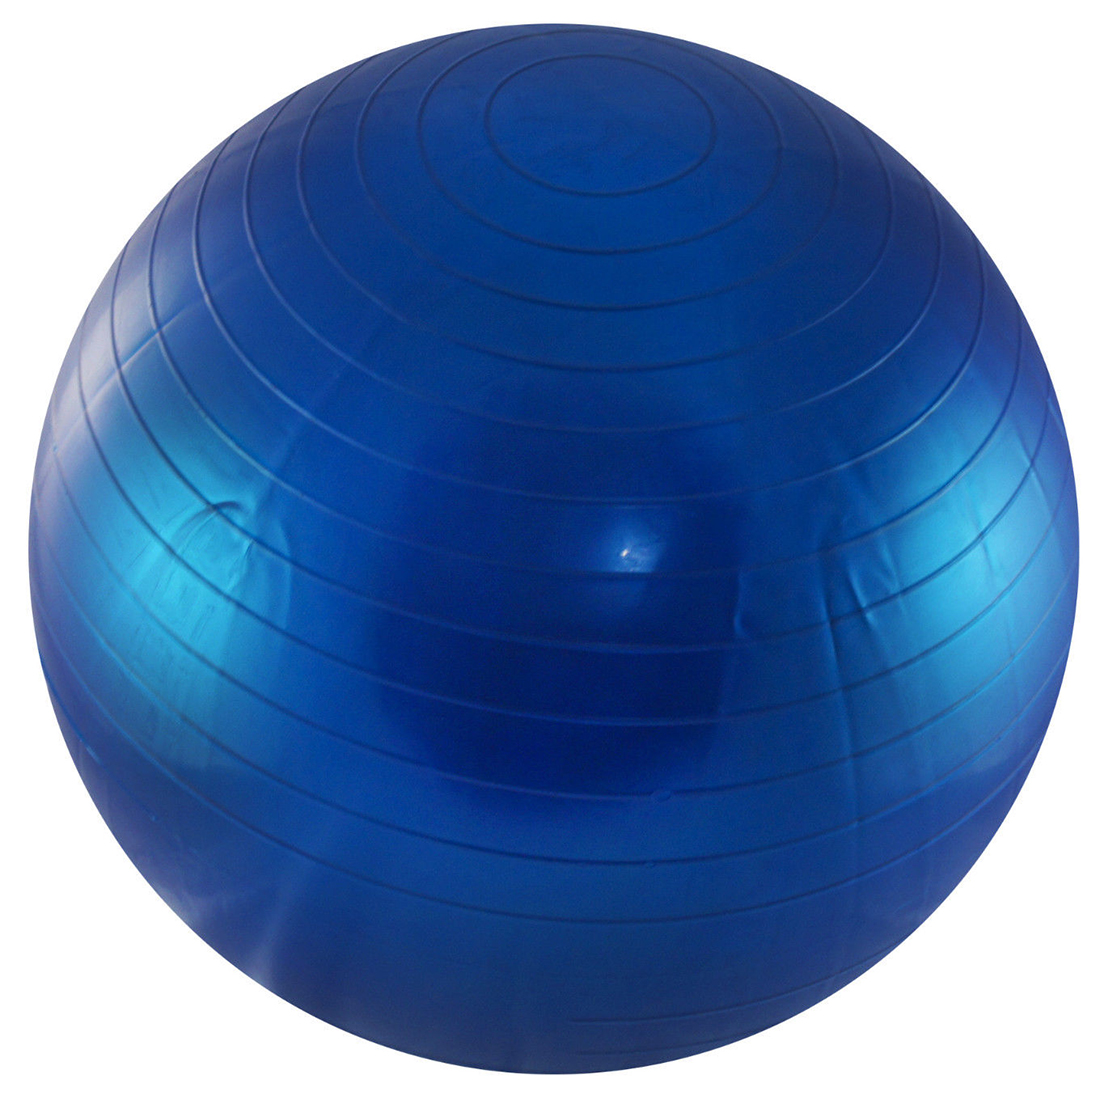 Balancing Stability Ball for Yoga Pilates Anti-Burst + Air Pump ...